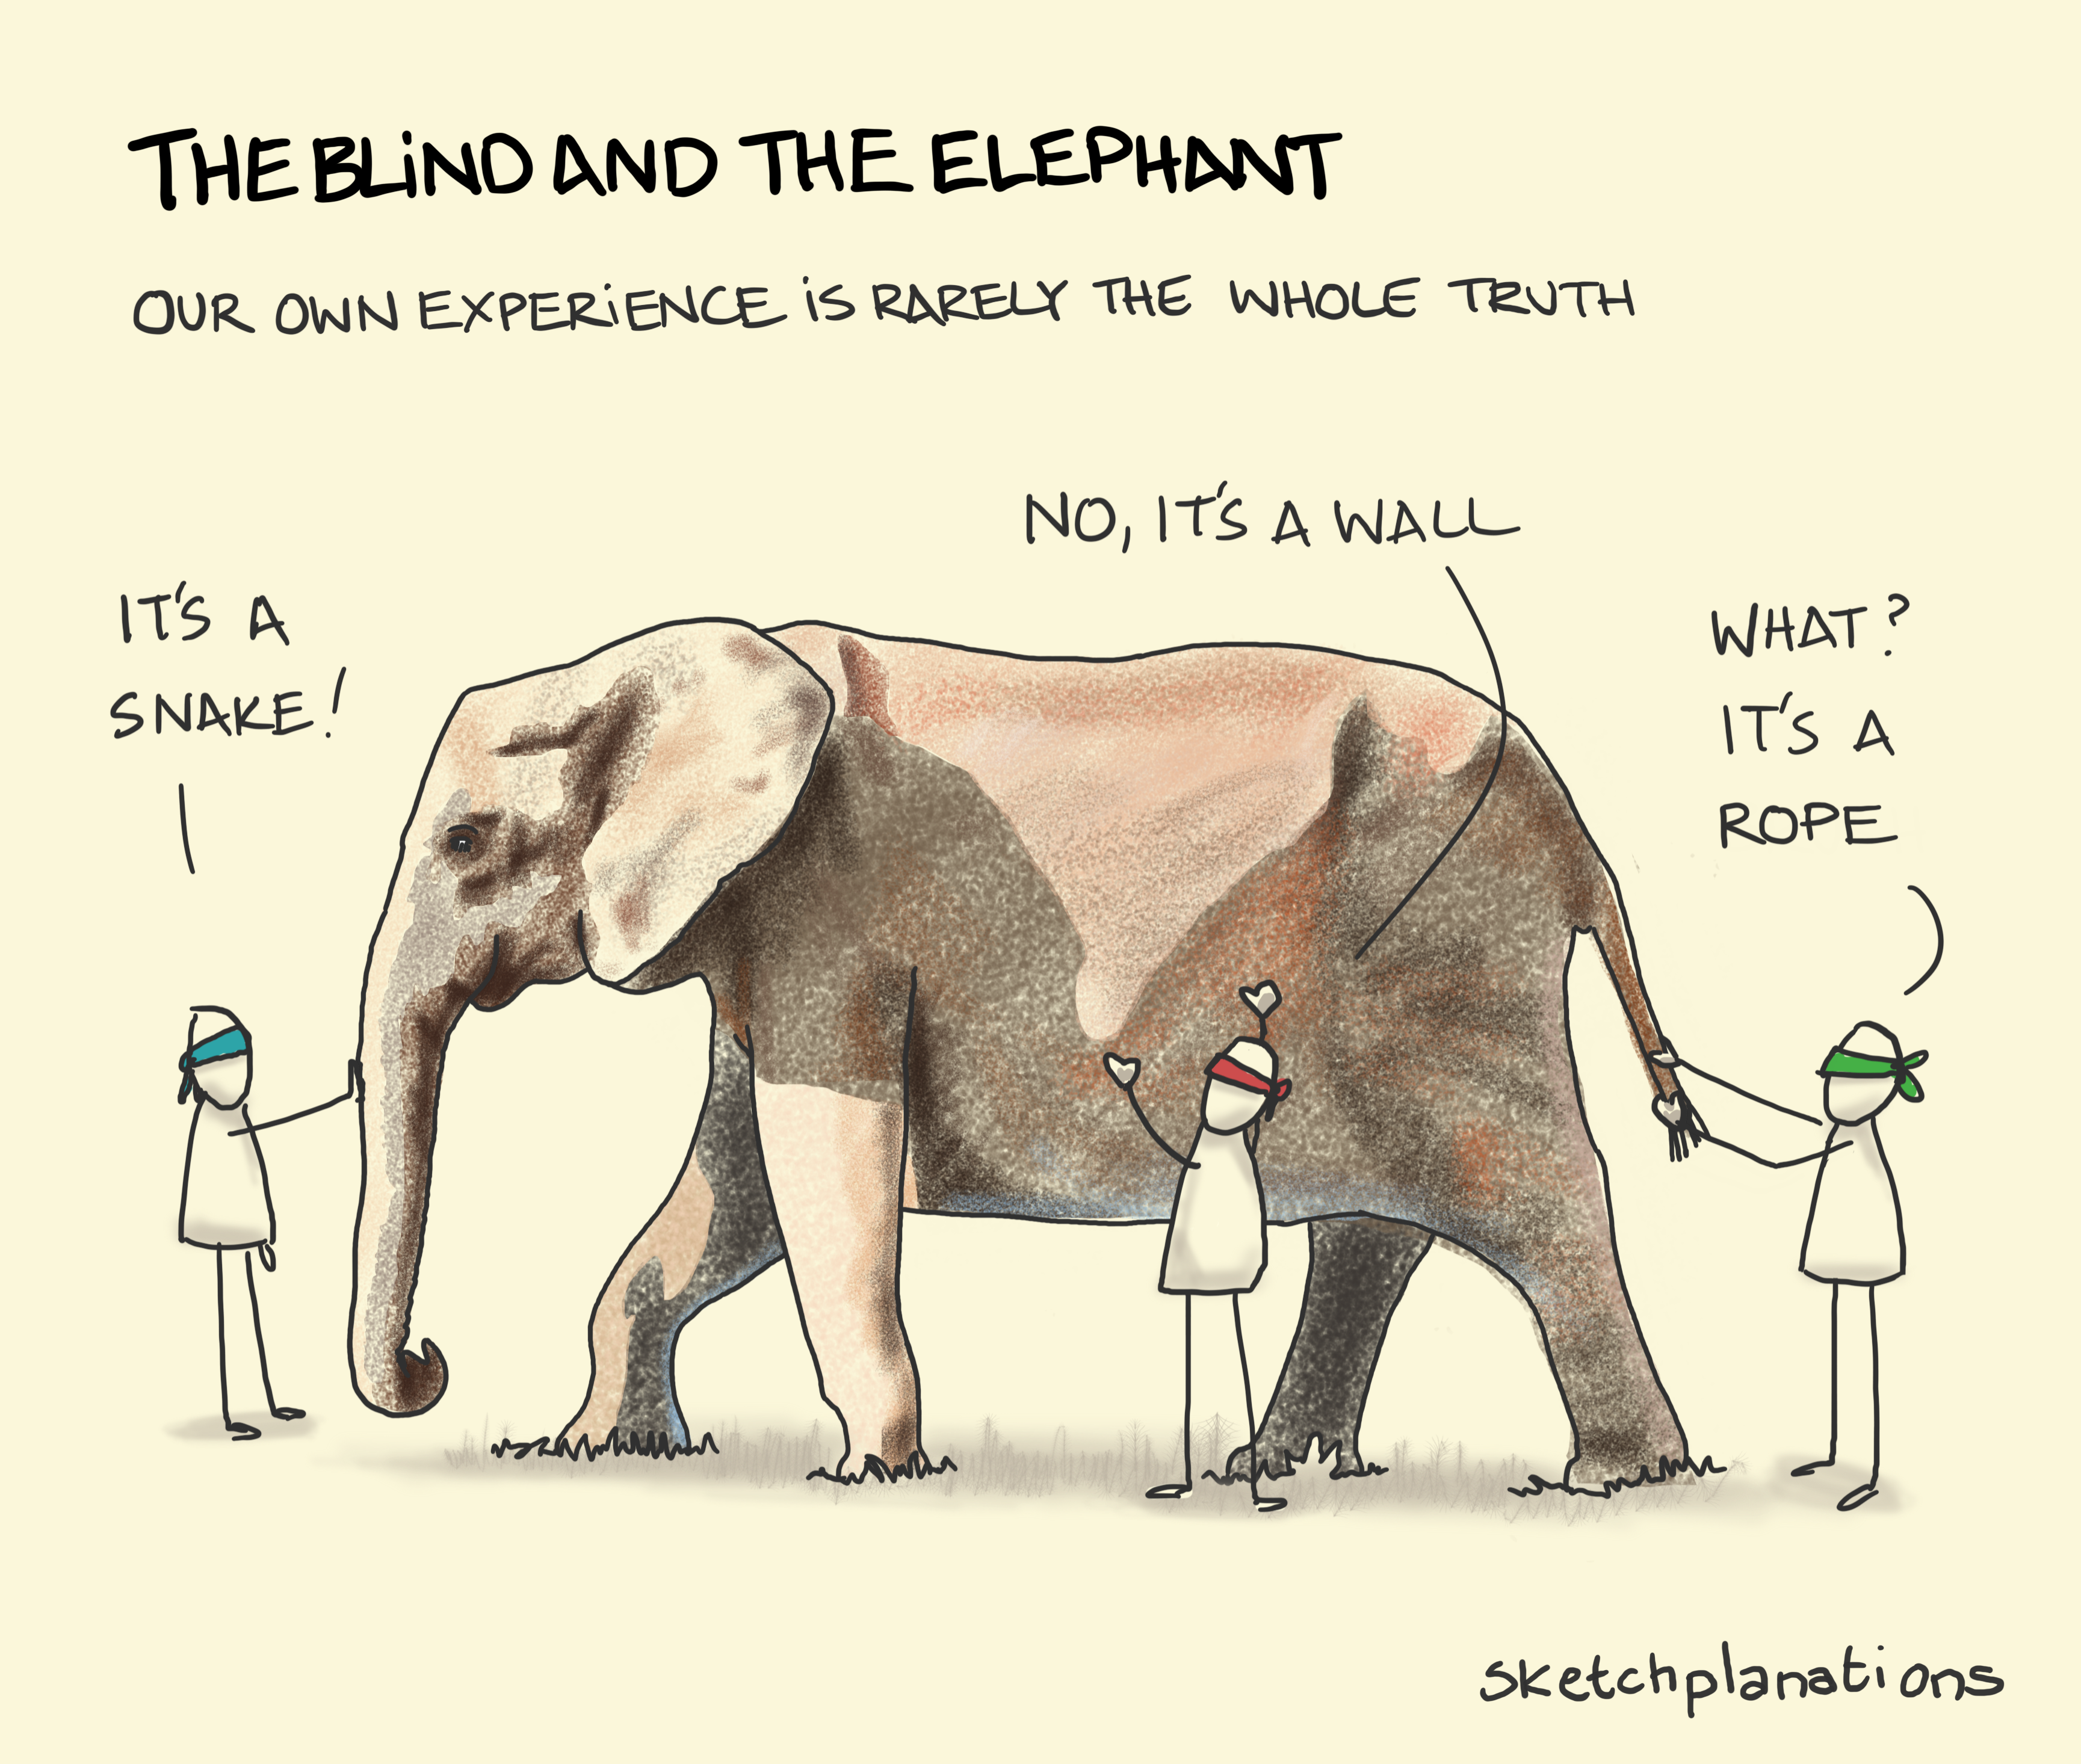 sketchplanations.com the blind and the elephant